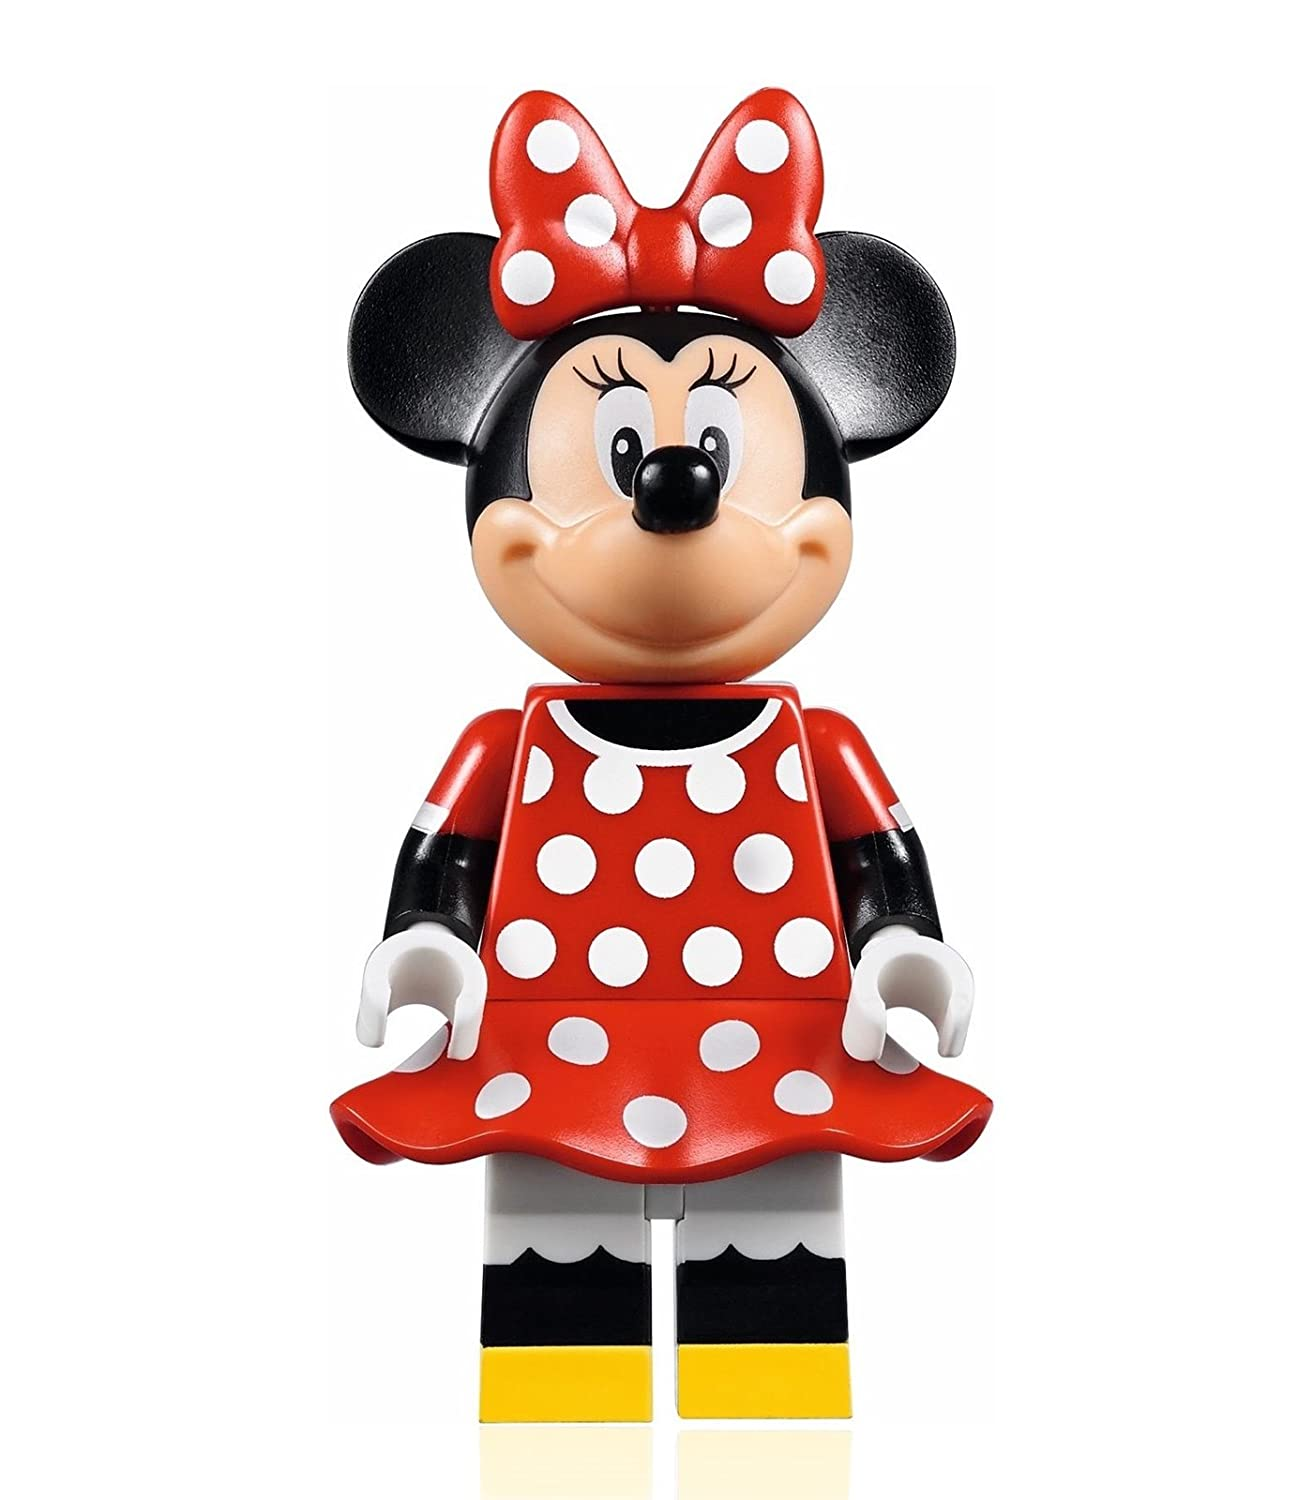 LEGO Disney Castle Minifigure 71040 Minnie Mouse Red Polka Dot Dress